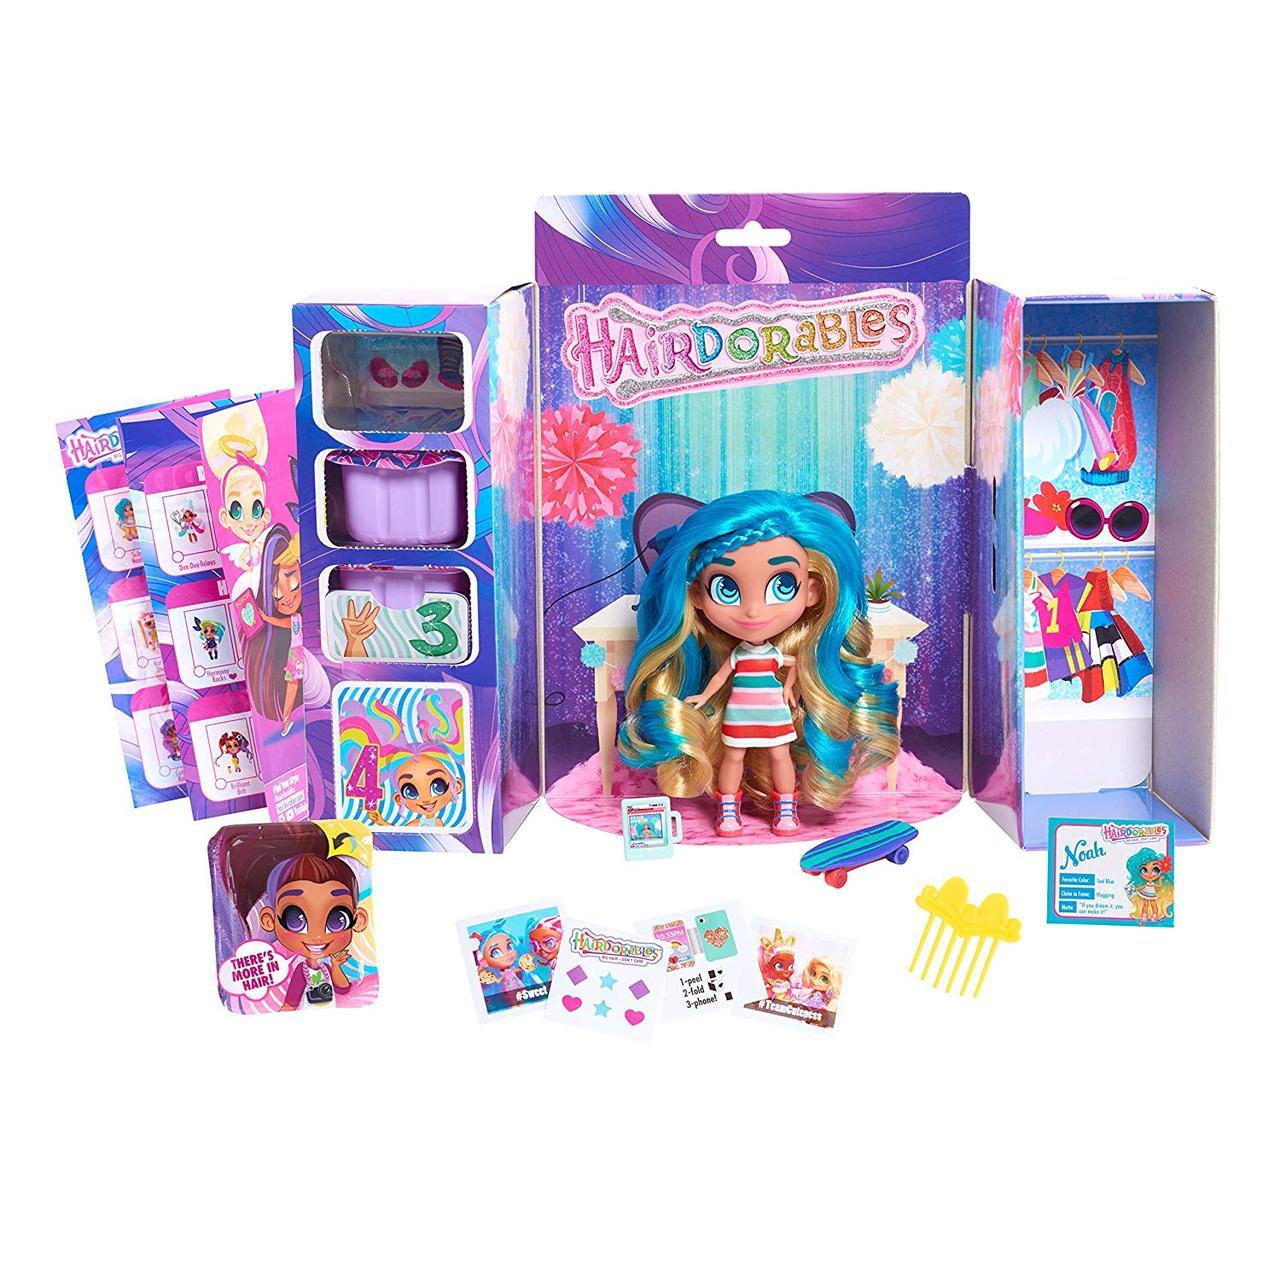 Куколки Хейрдораблес / Hairdorables ‐ Collectible Surprise Dolls and Accessories